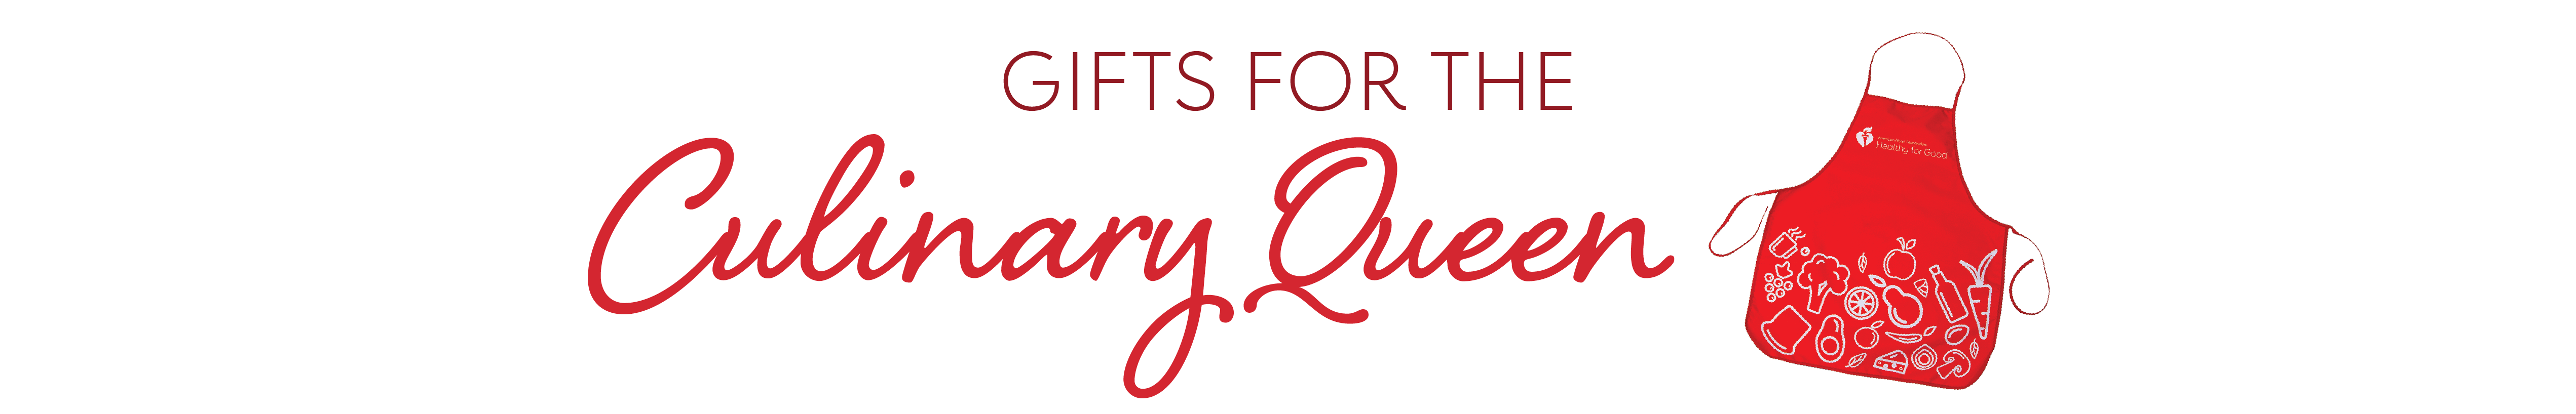 Gifts for the Culinary Queen